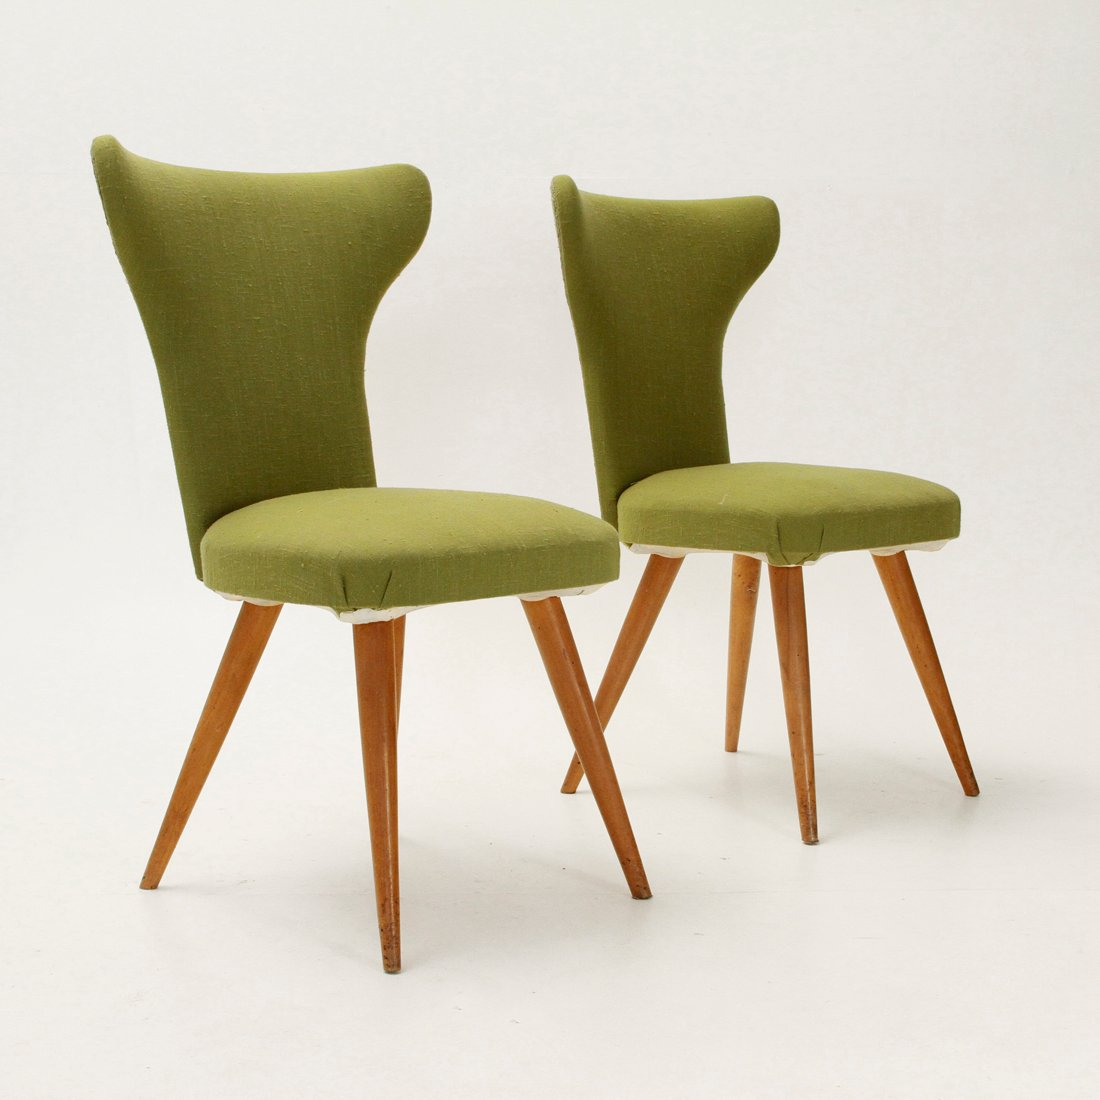 Italian Wingback Chairs 1950s Set Of 2 For Sale At Pamono